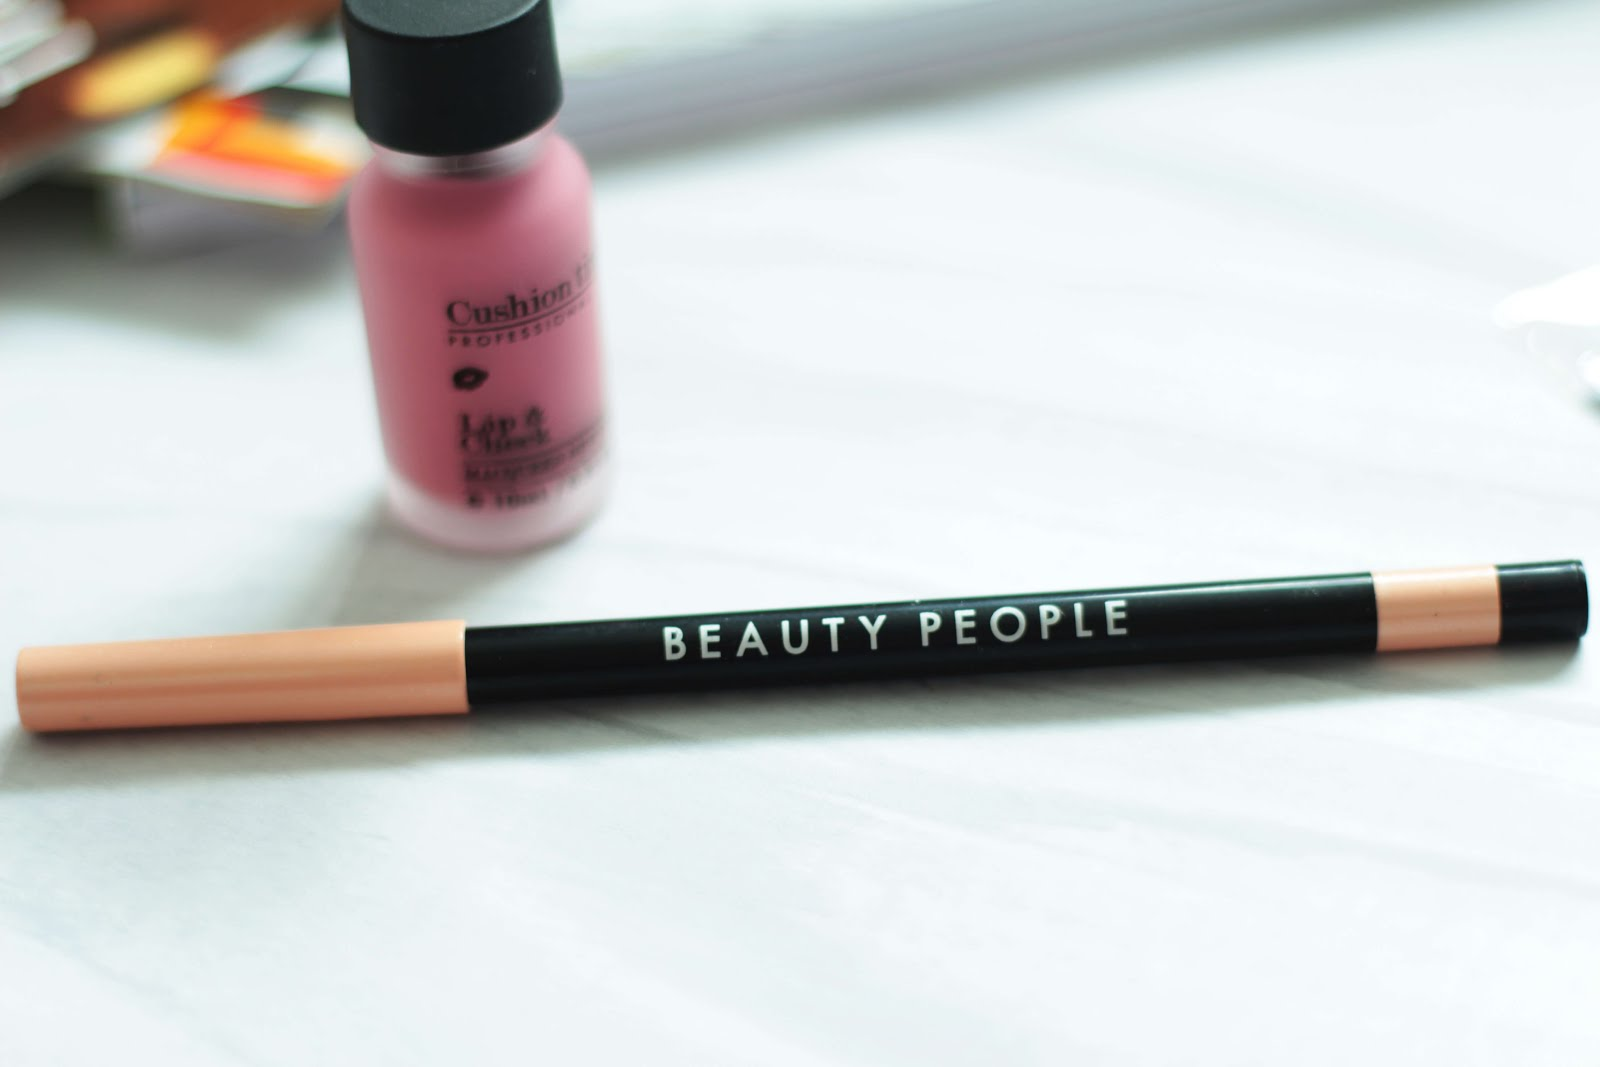 beauty people korean beauty brand eye liner review